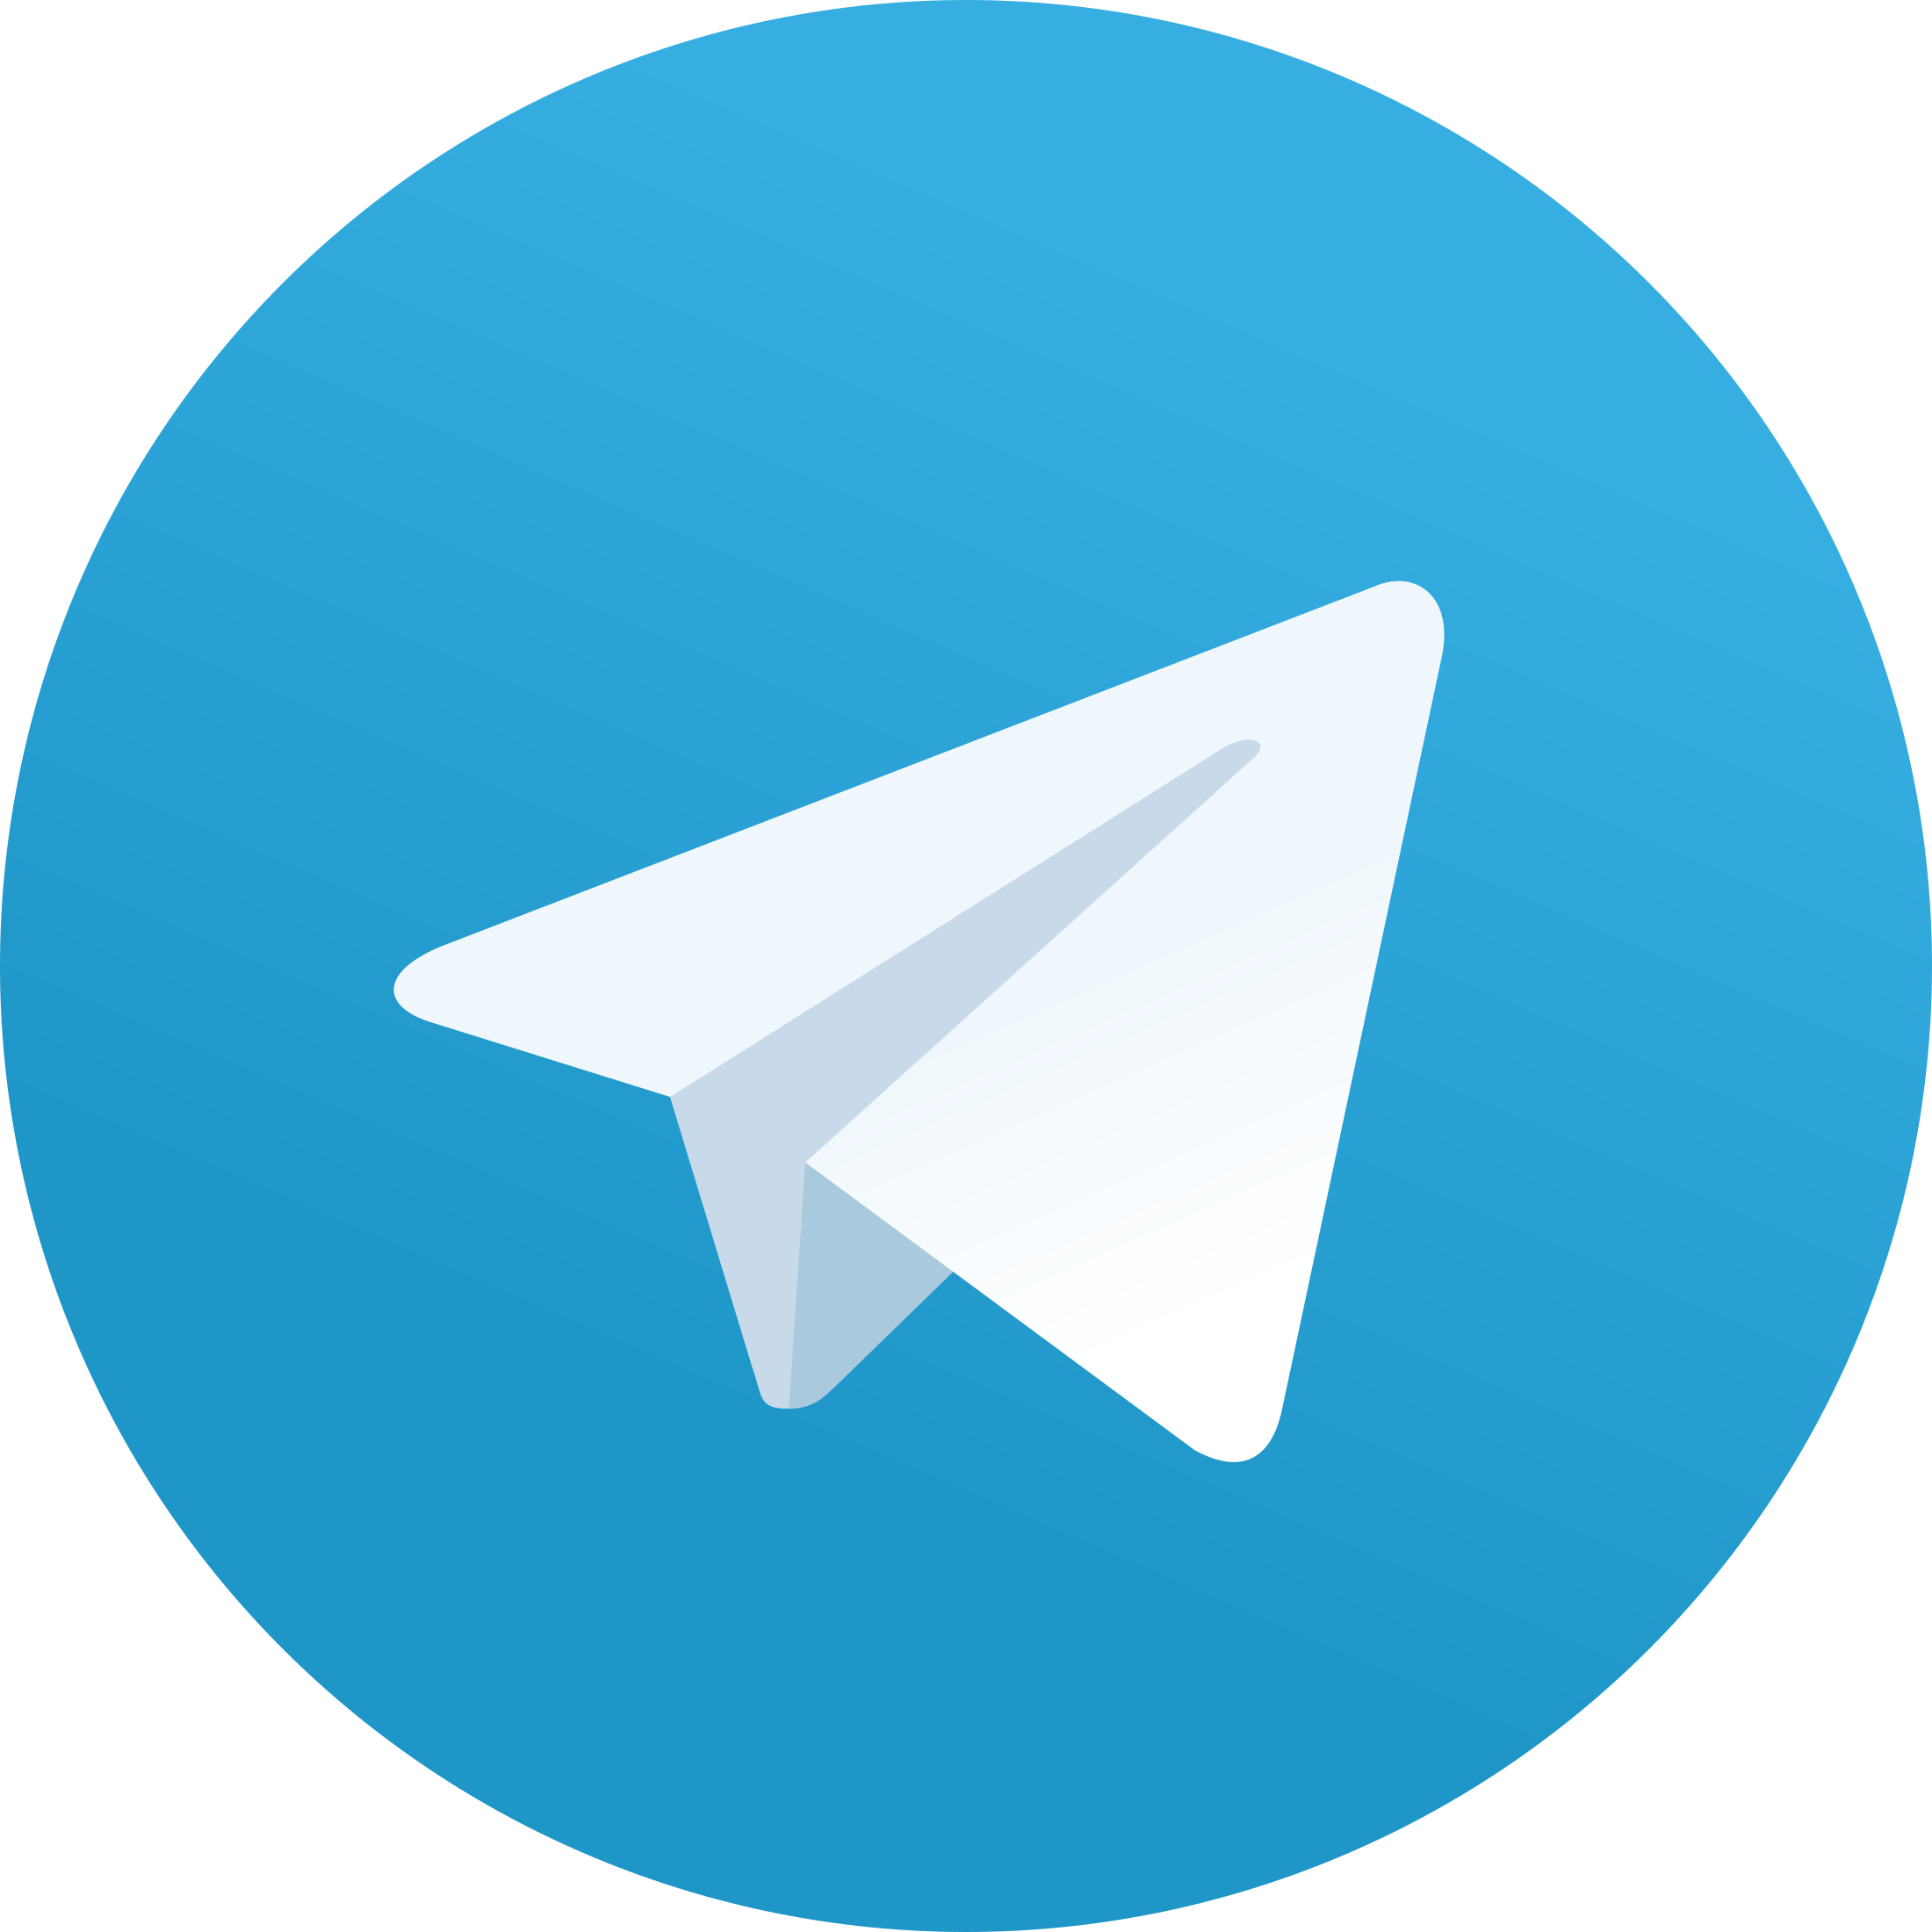 telegram-icone-icon-1